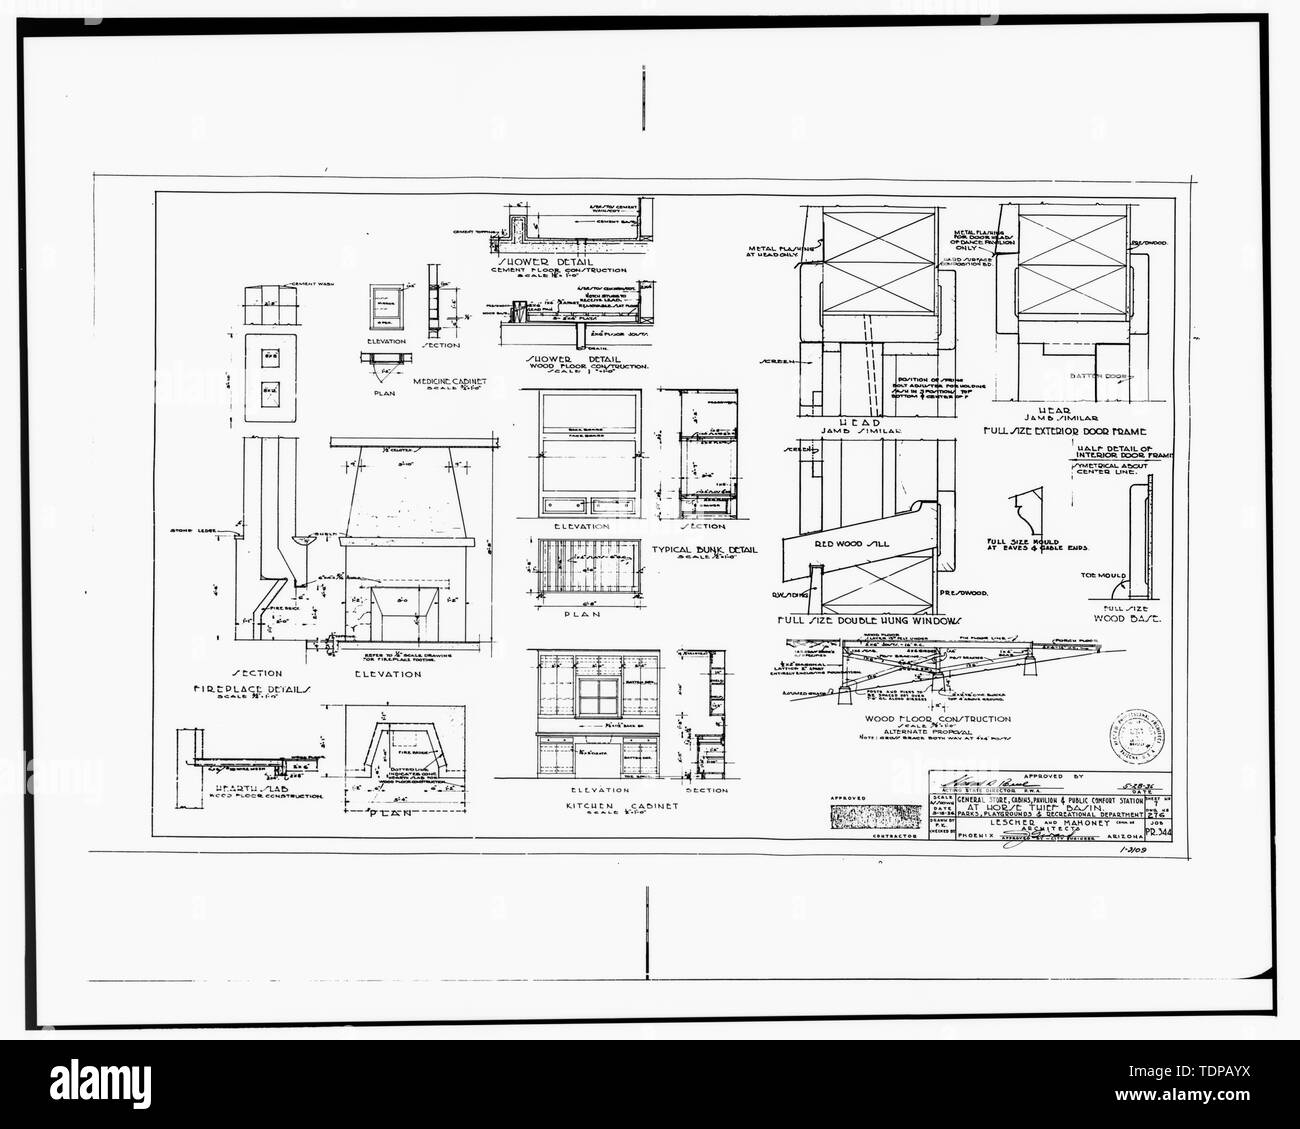 Mahoney Black and White Stock Photos & Images - Page 2 - Alamy